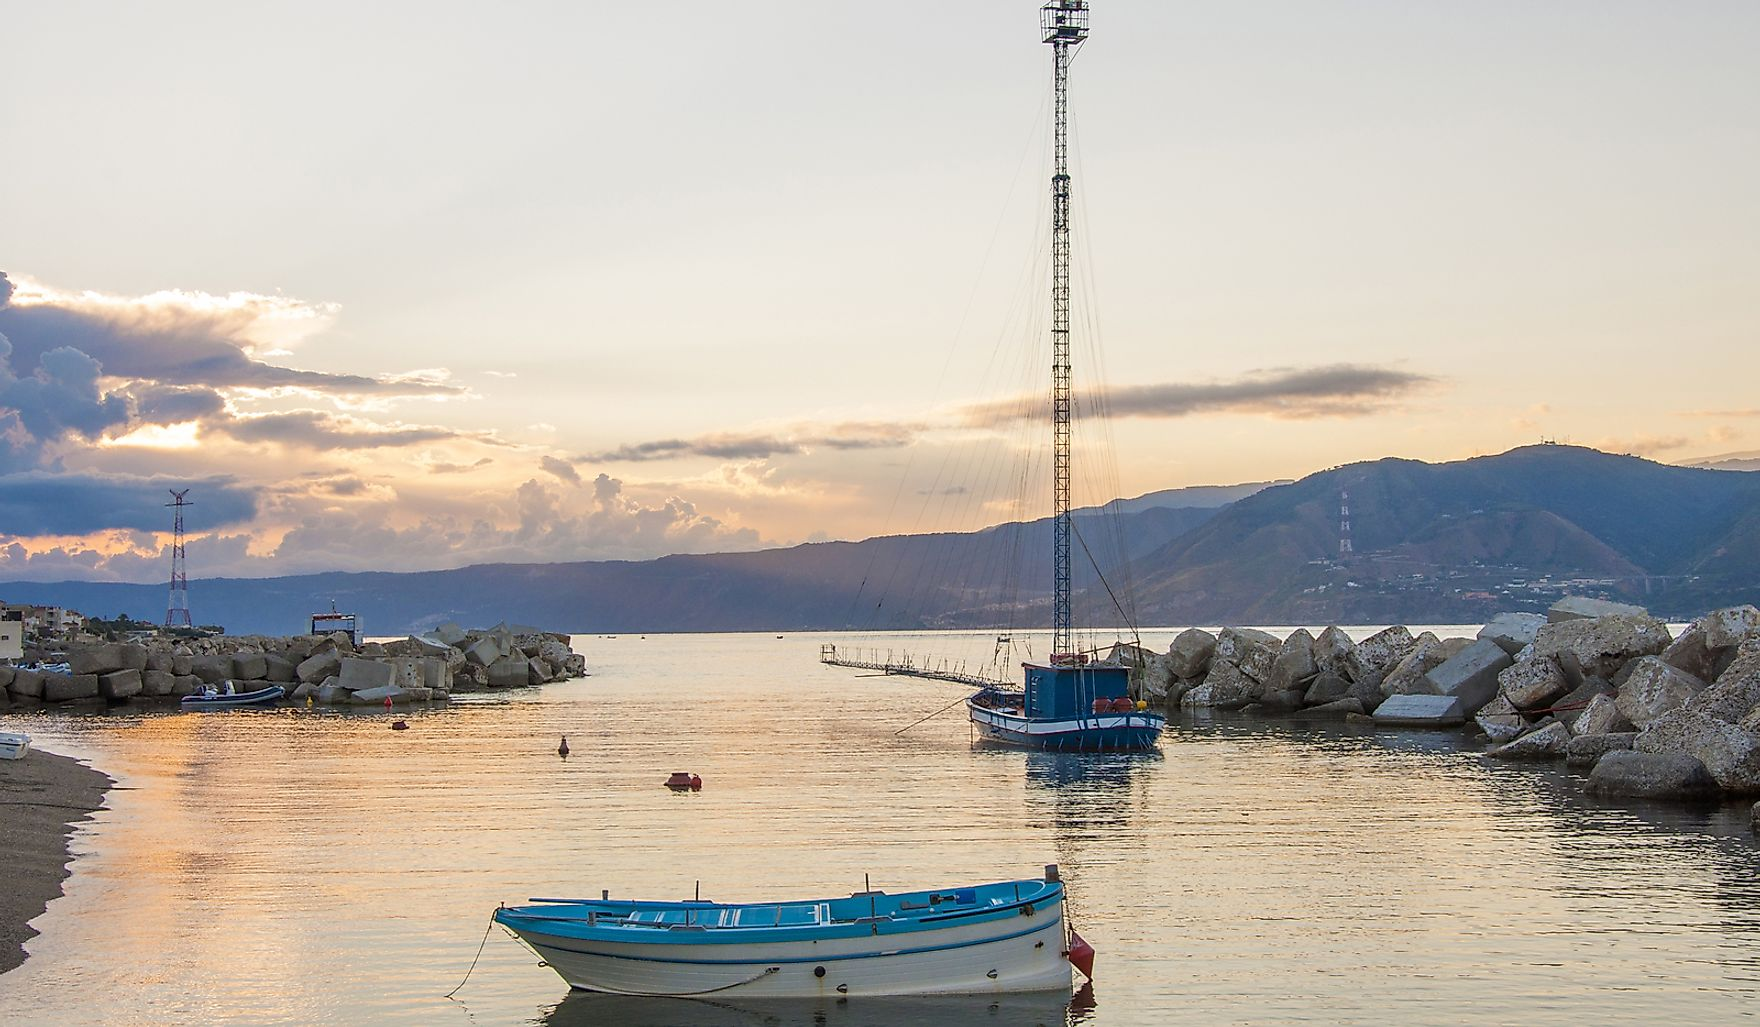 Feluca at dawn, the boats for swordfish hunting in the Strait of Messina, Sicily, Italy.